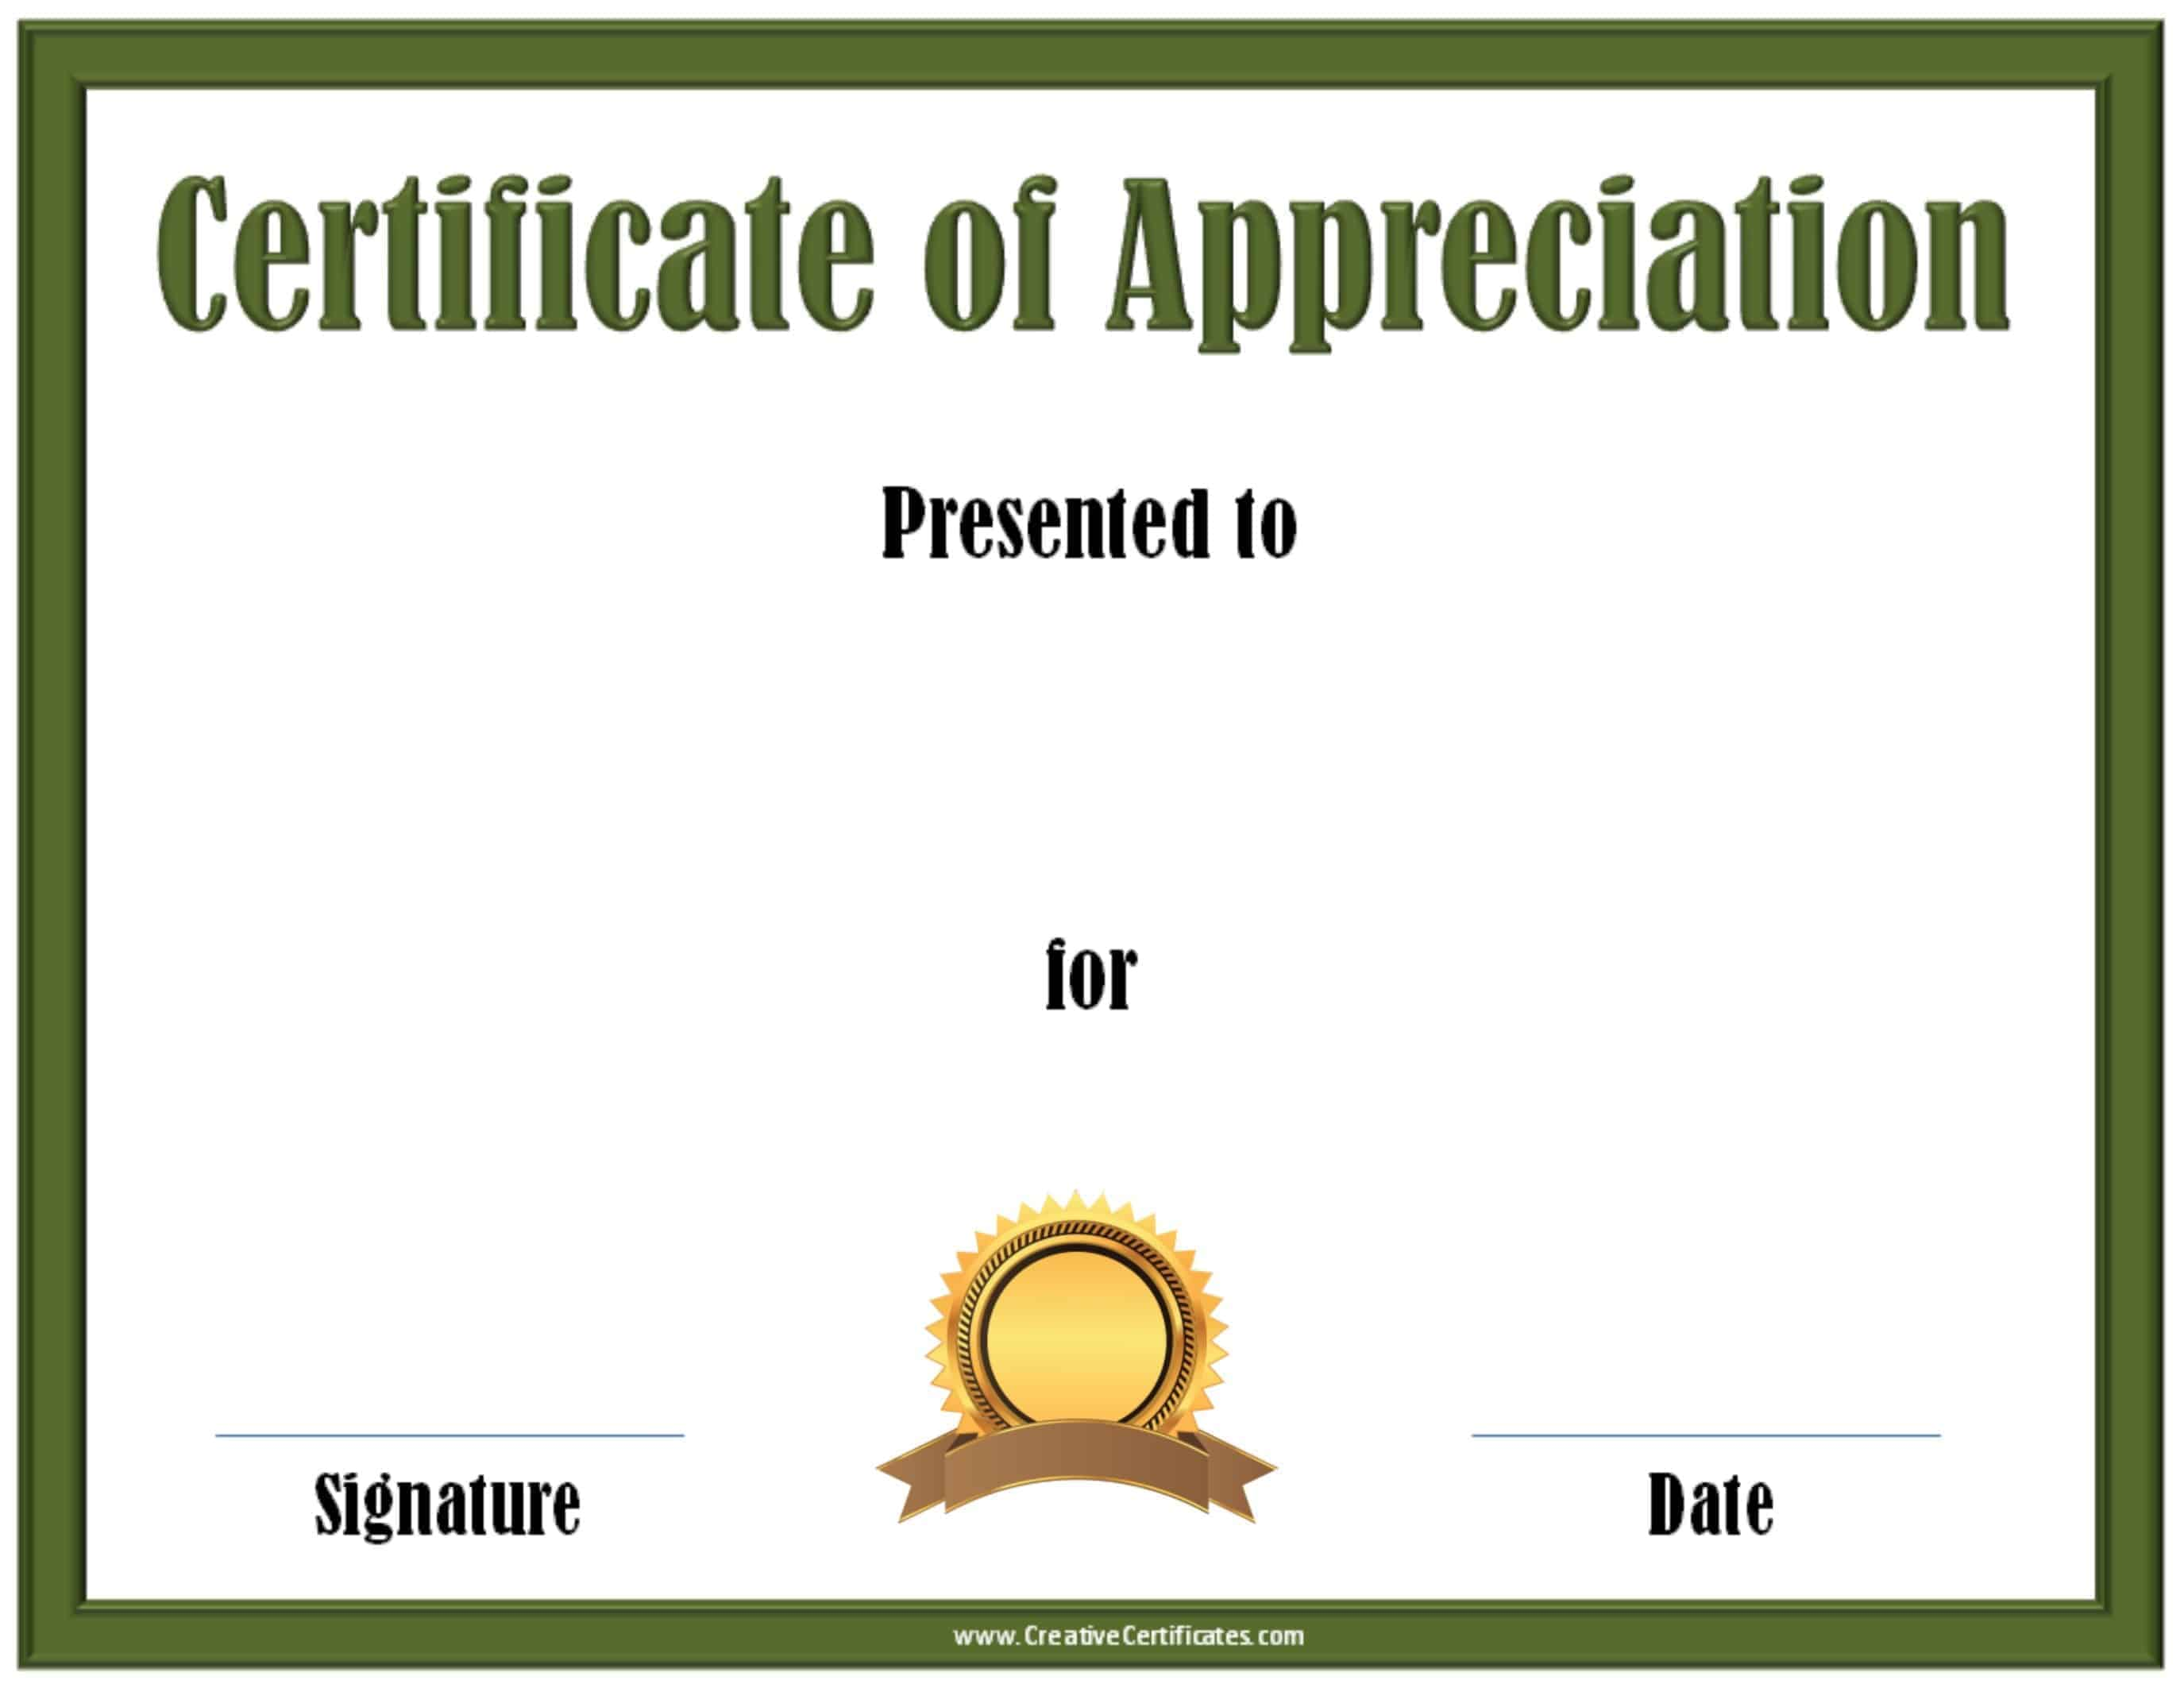 certificate of appreciation template printable green certificate template a gold and brown award ribbon